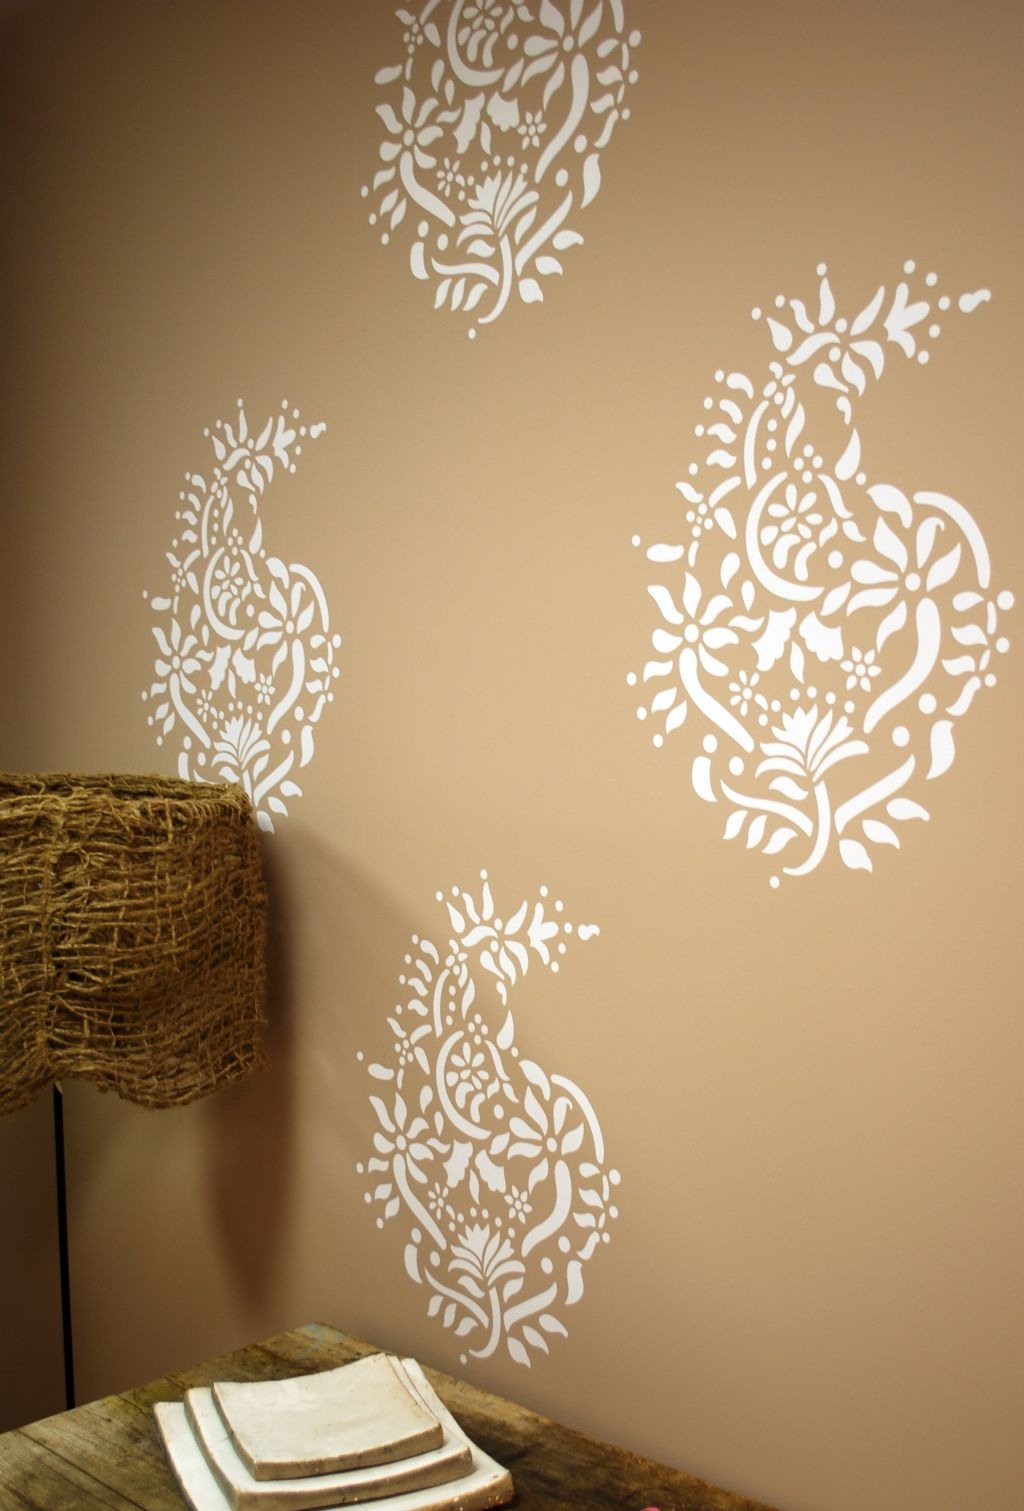 Wall Designs To Paint : Paisley pattern cool wall painting designs